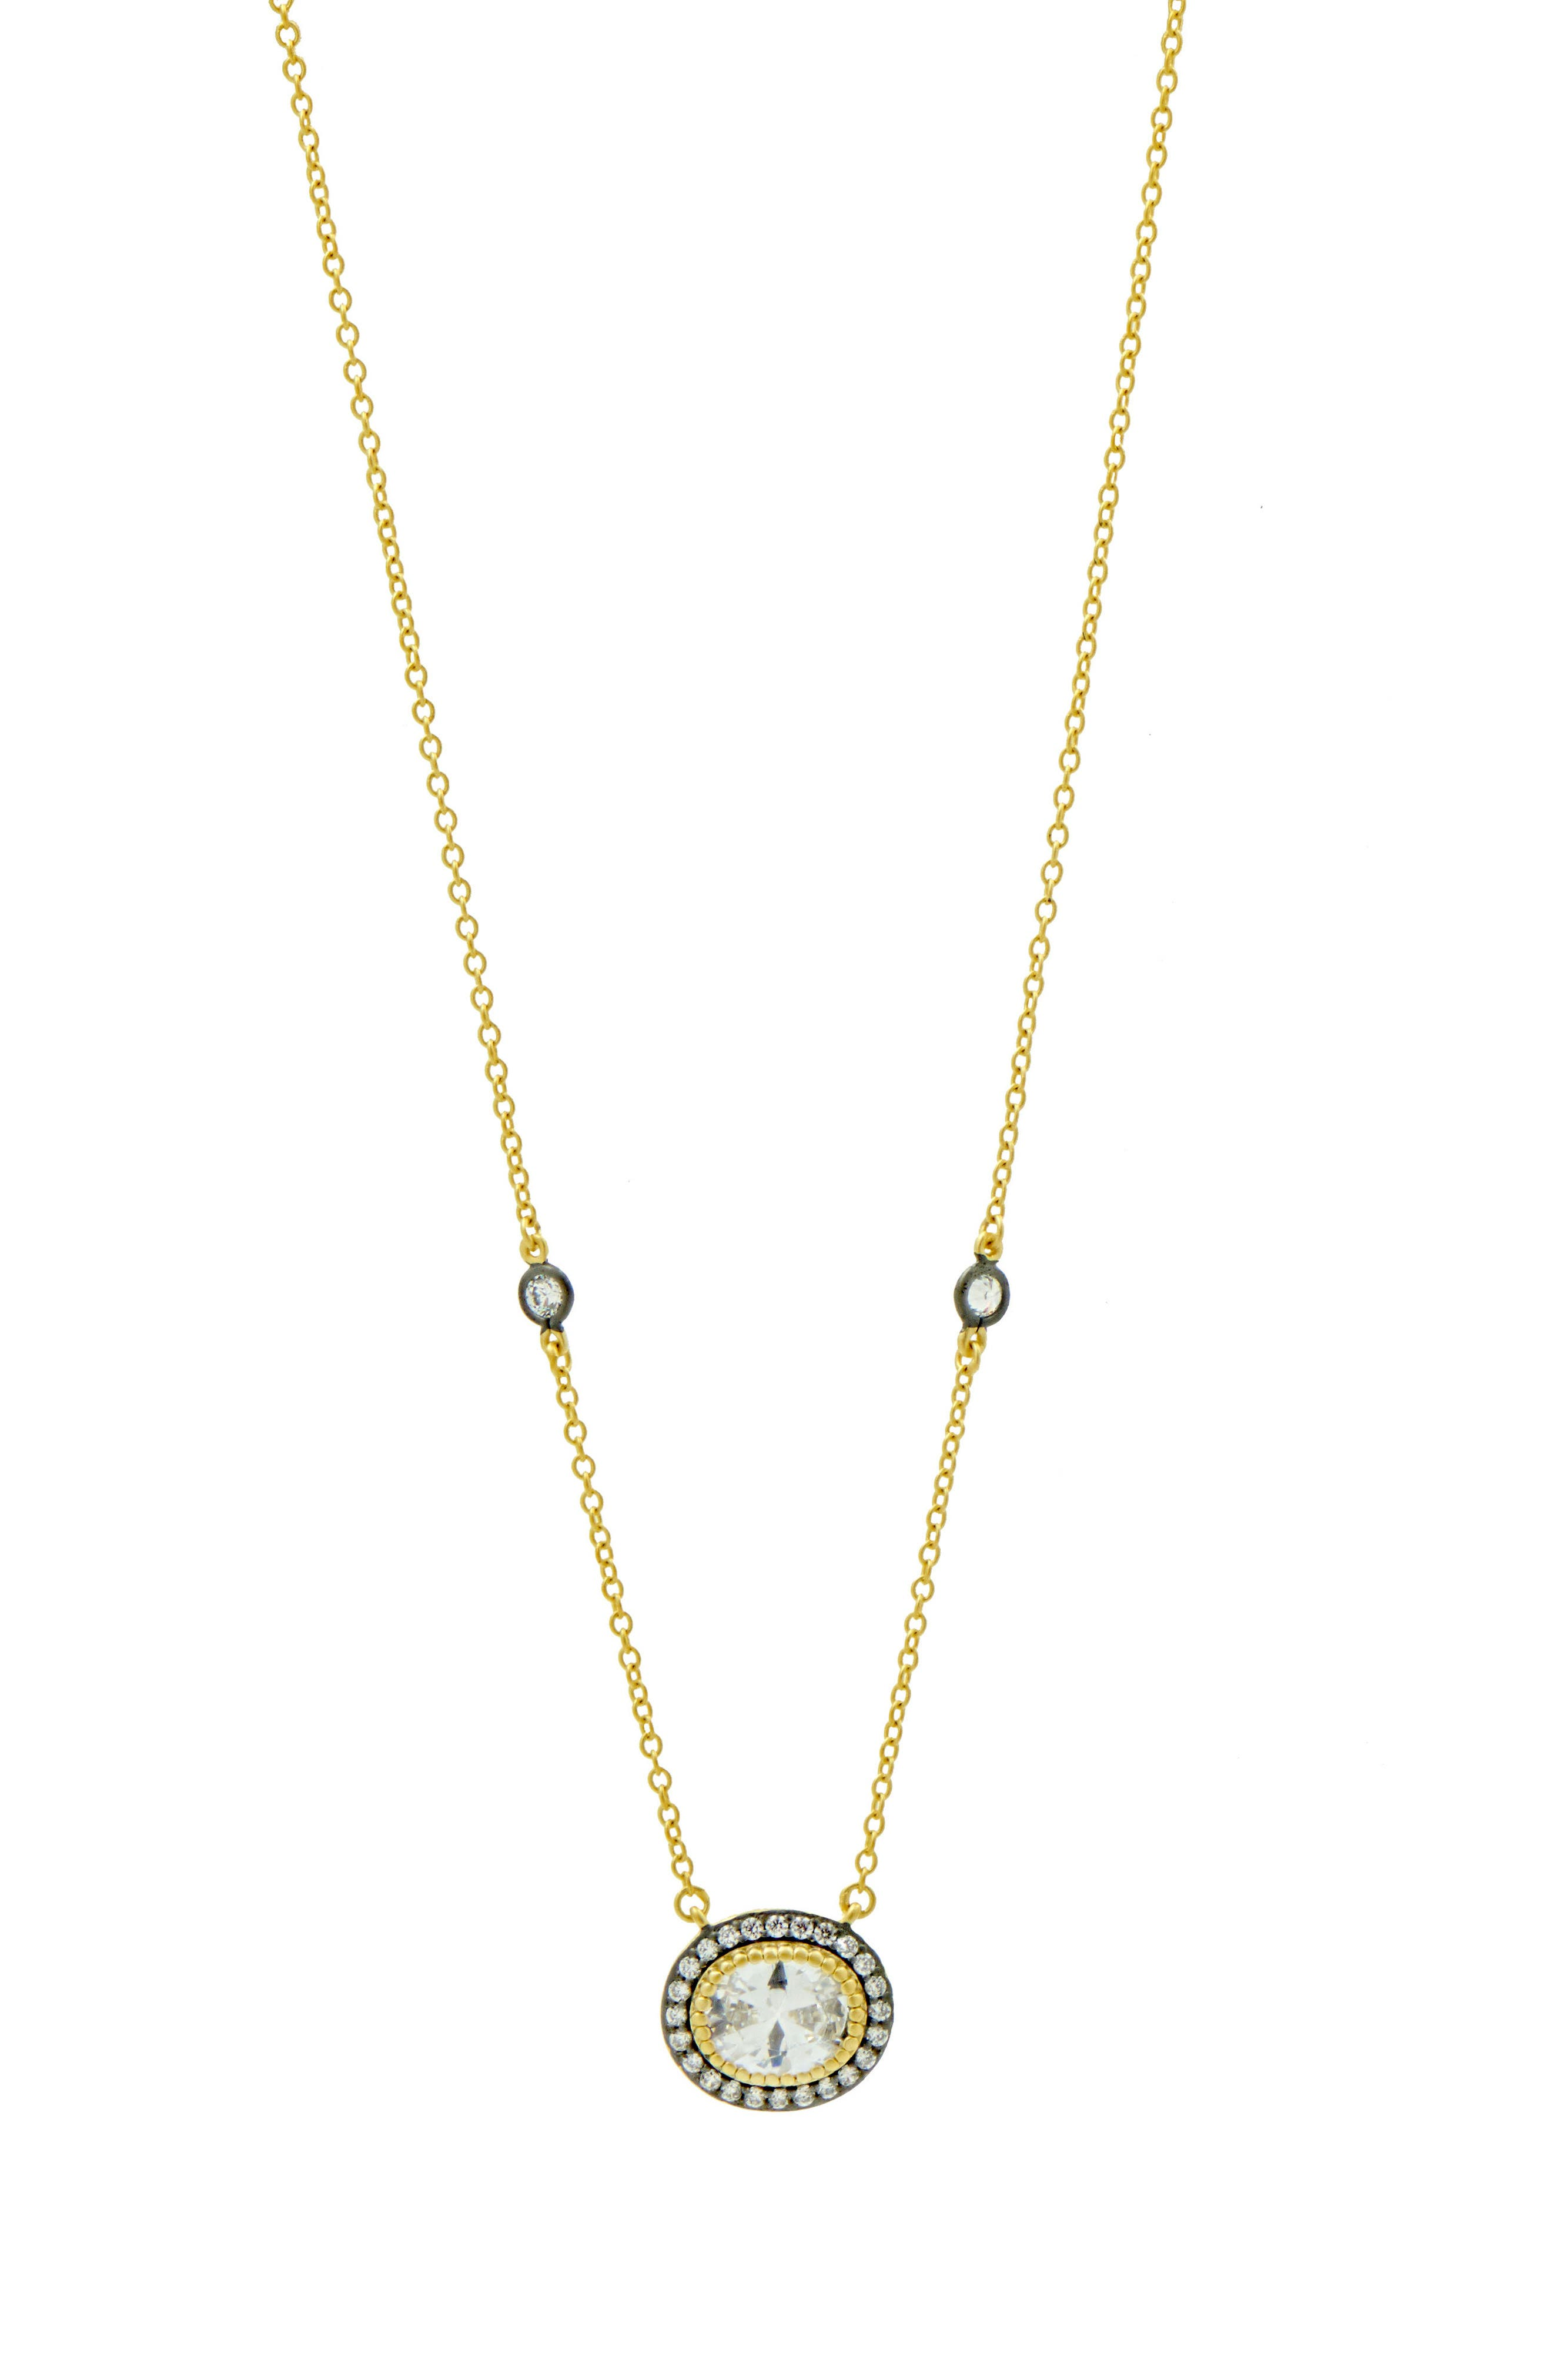 Opera Pendant Necklace,                         Main,                         color, Gold And Black Rhodium